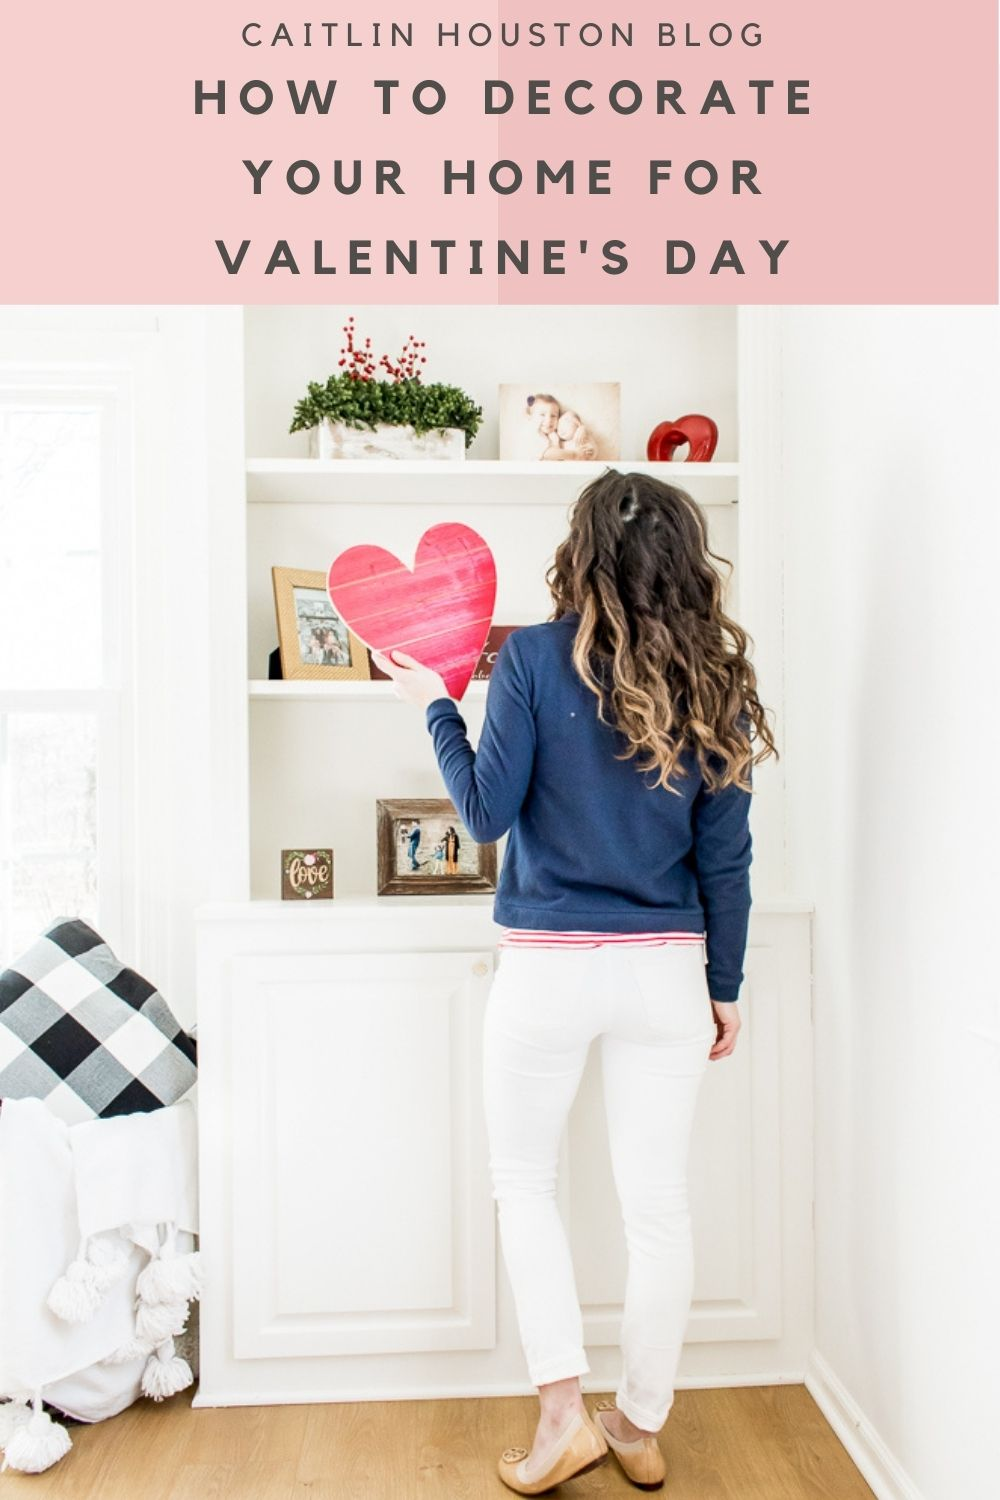 How to Decorate Your Home for Valentine's Day